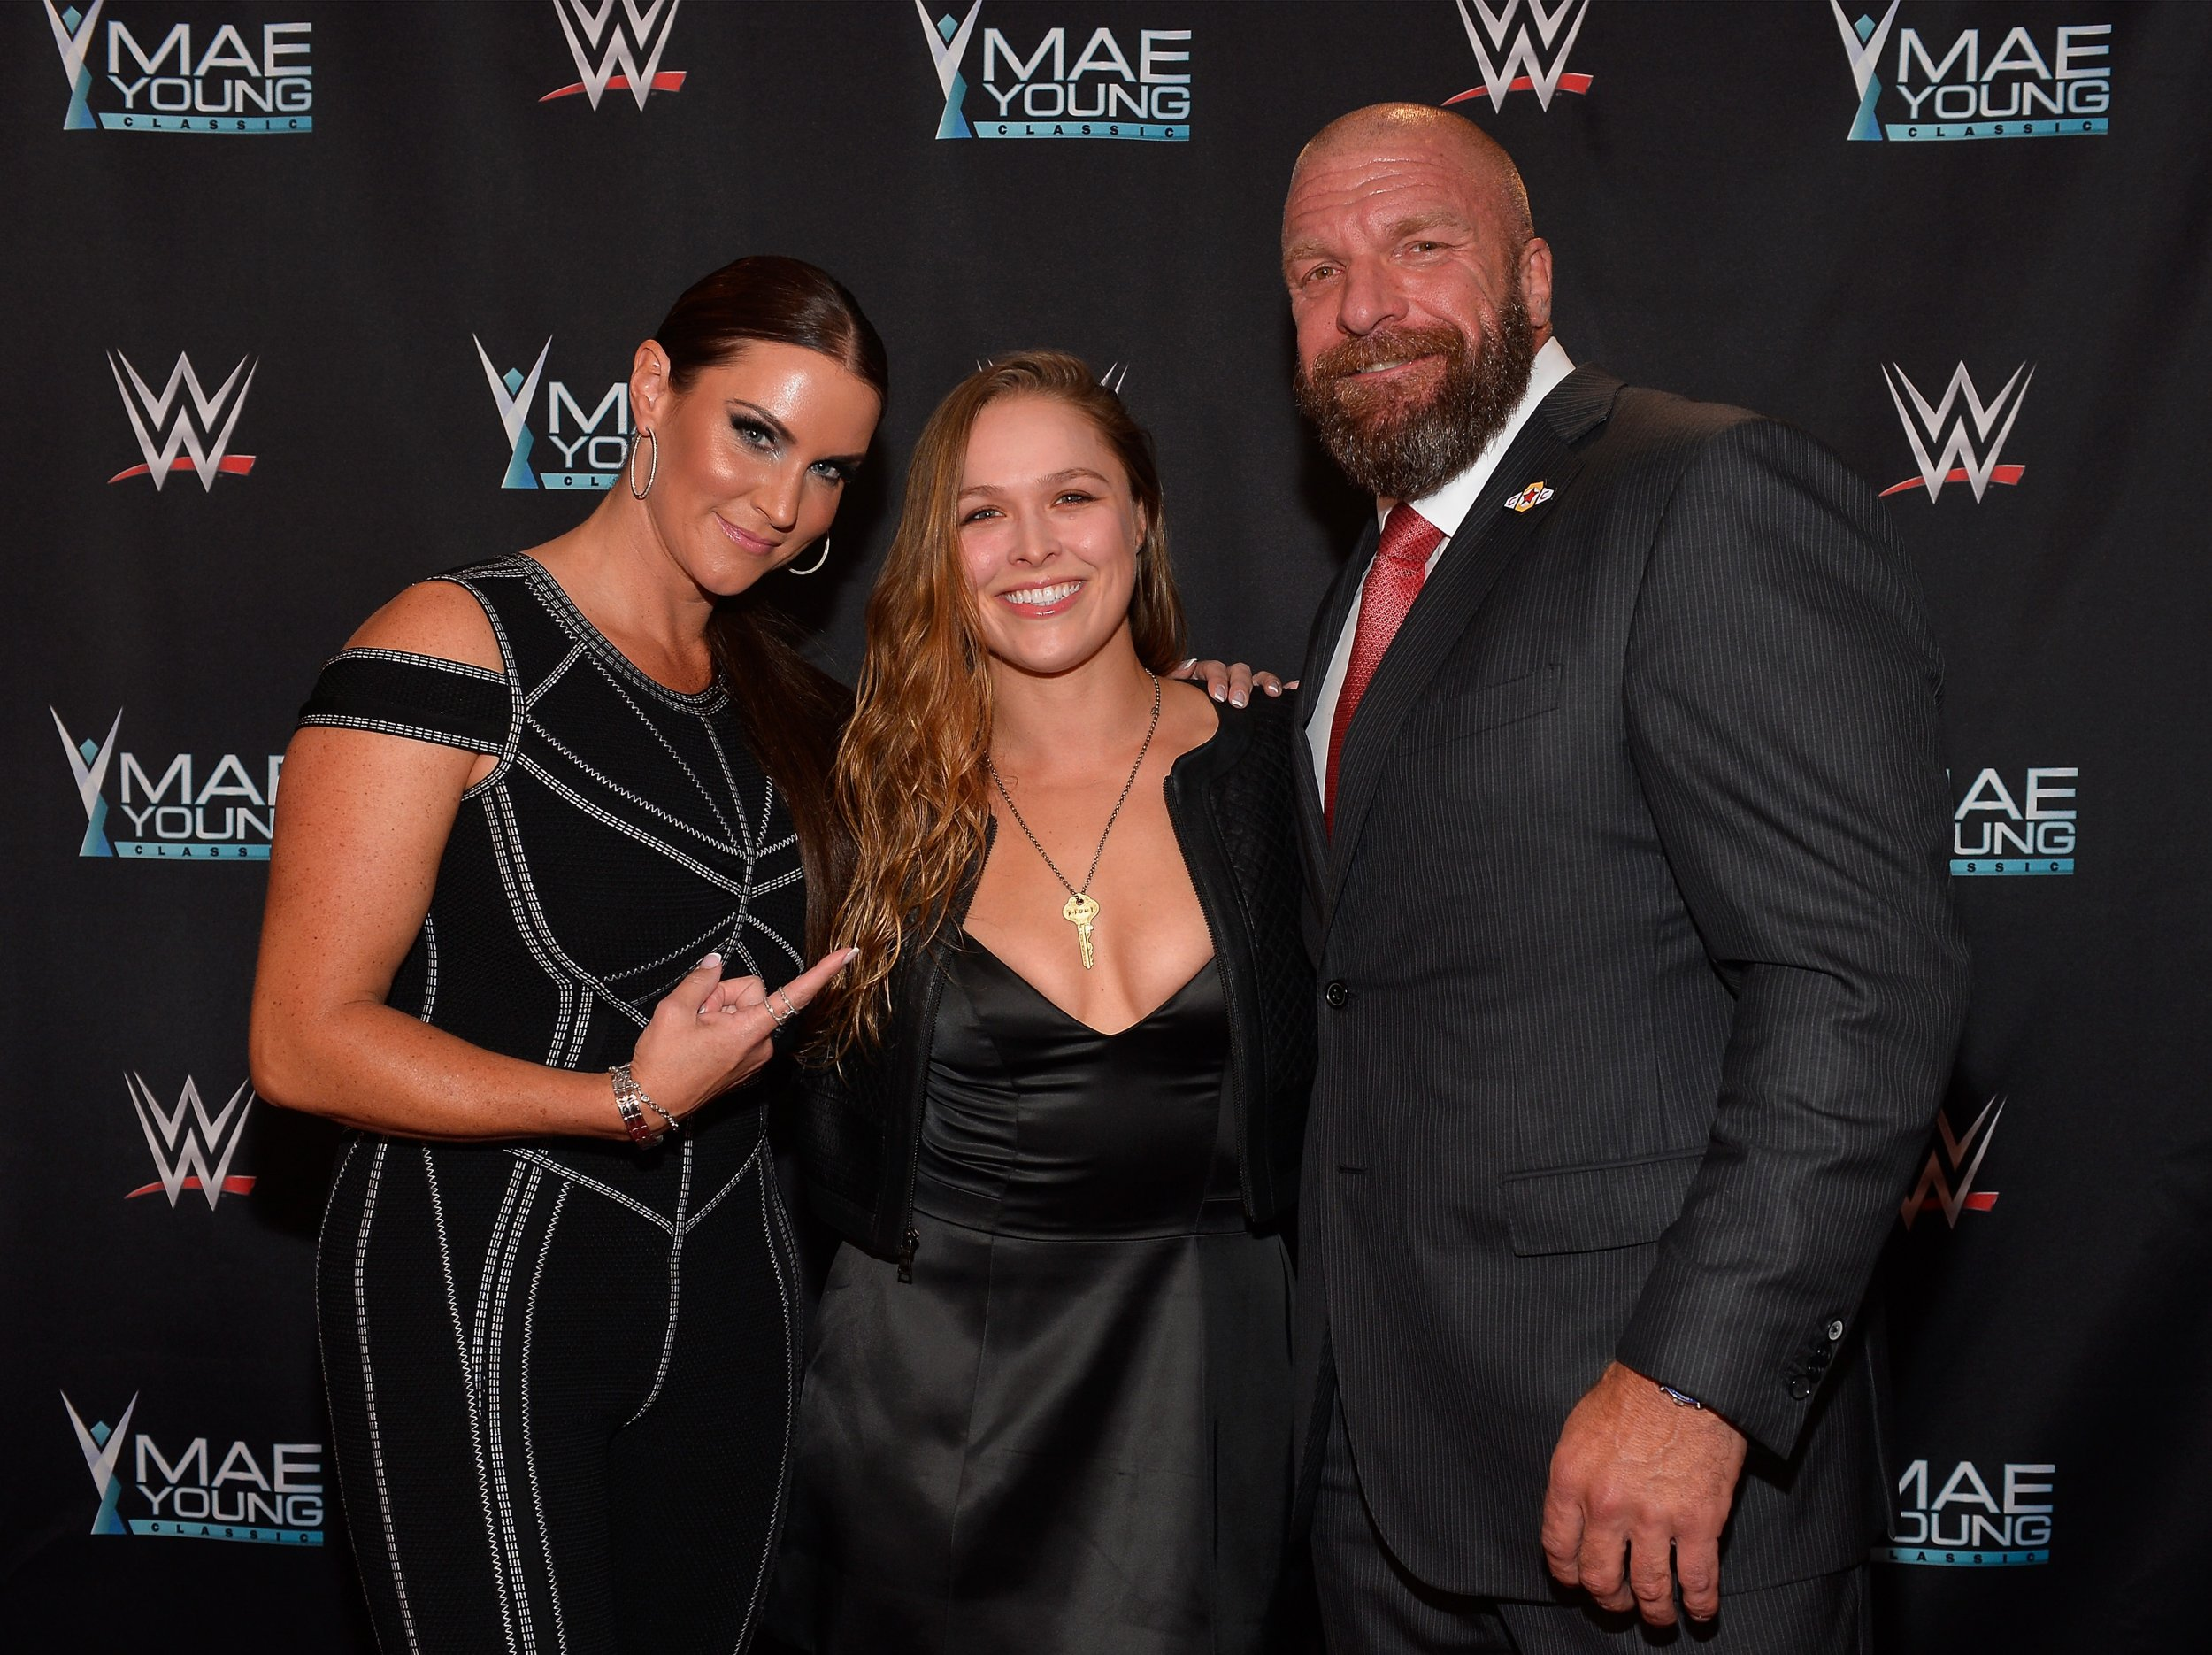 Ronda Rousey, center, with Stephanie McMahon and Triple H.